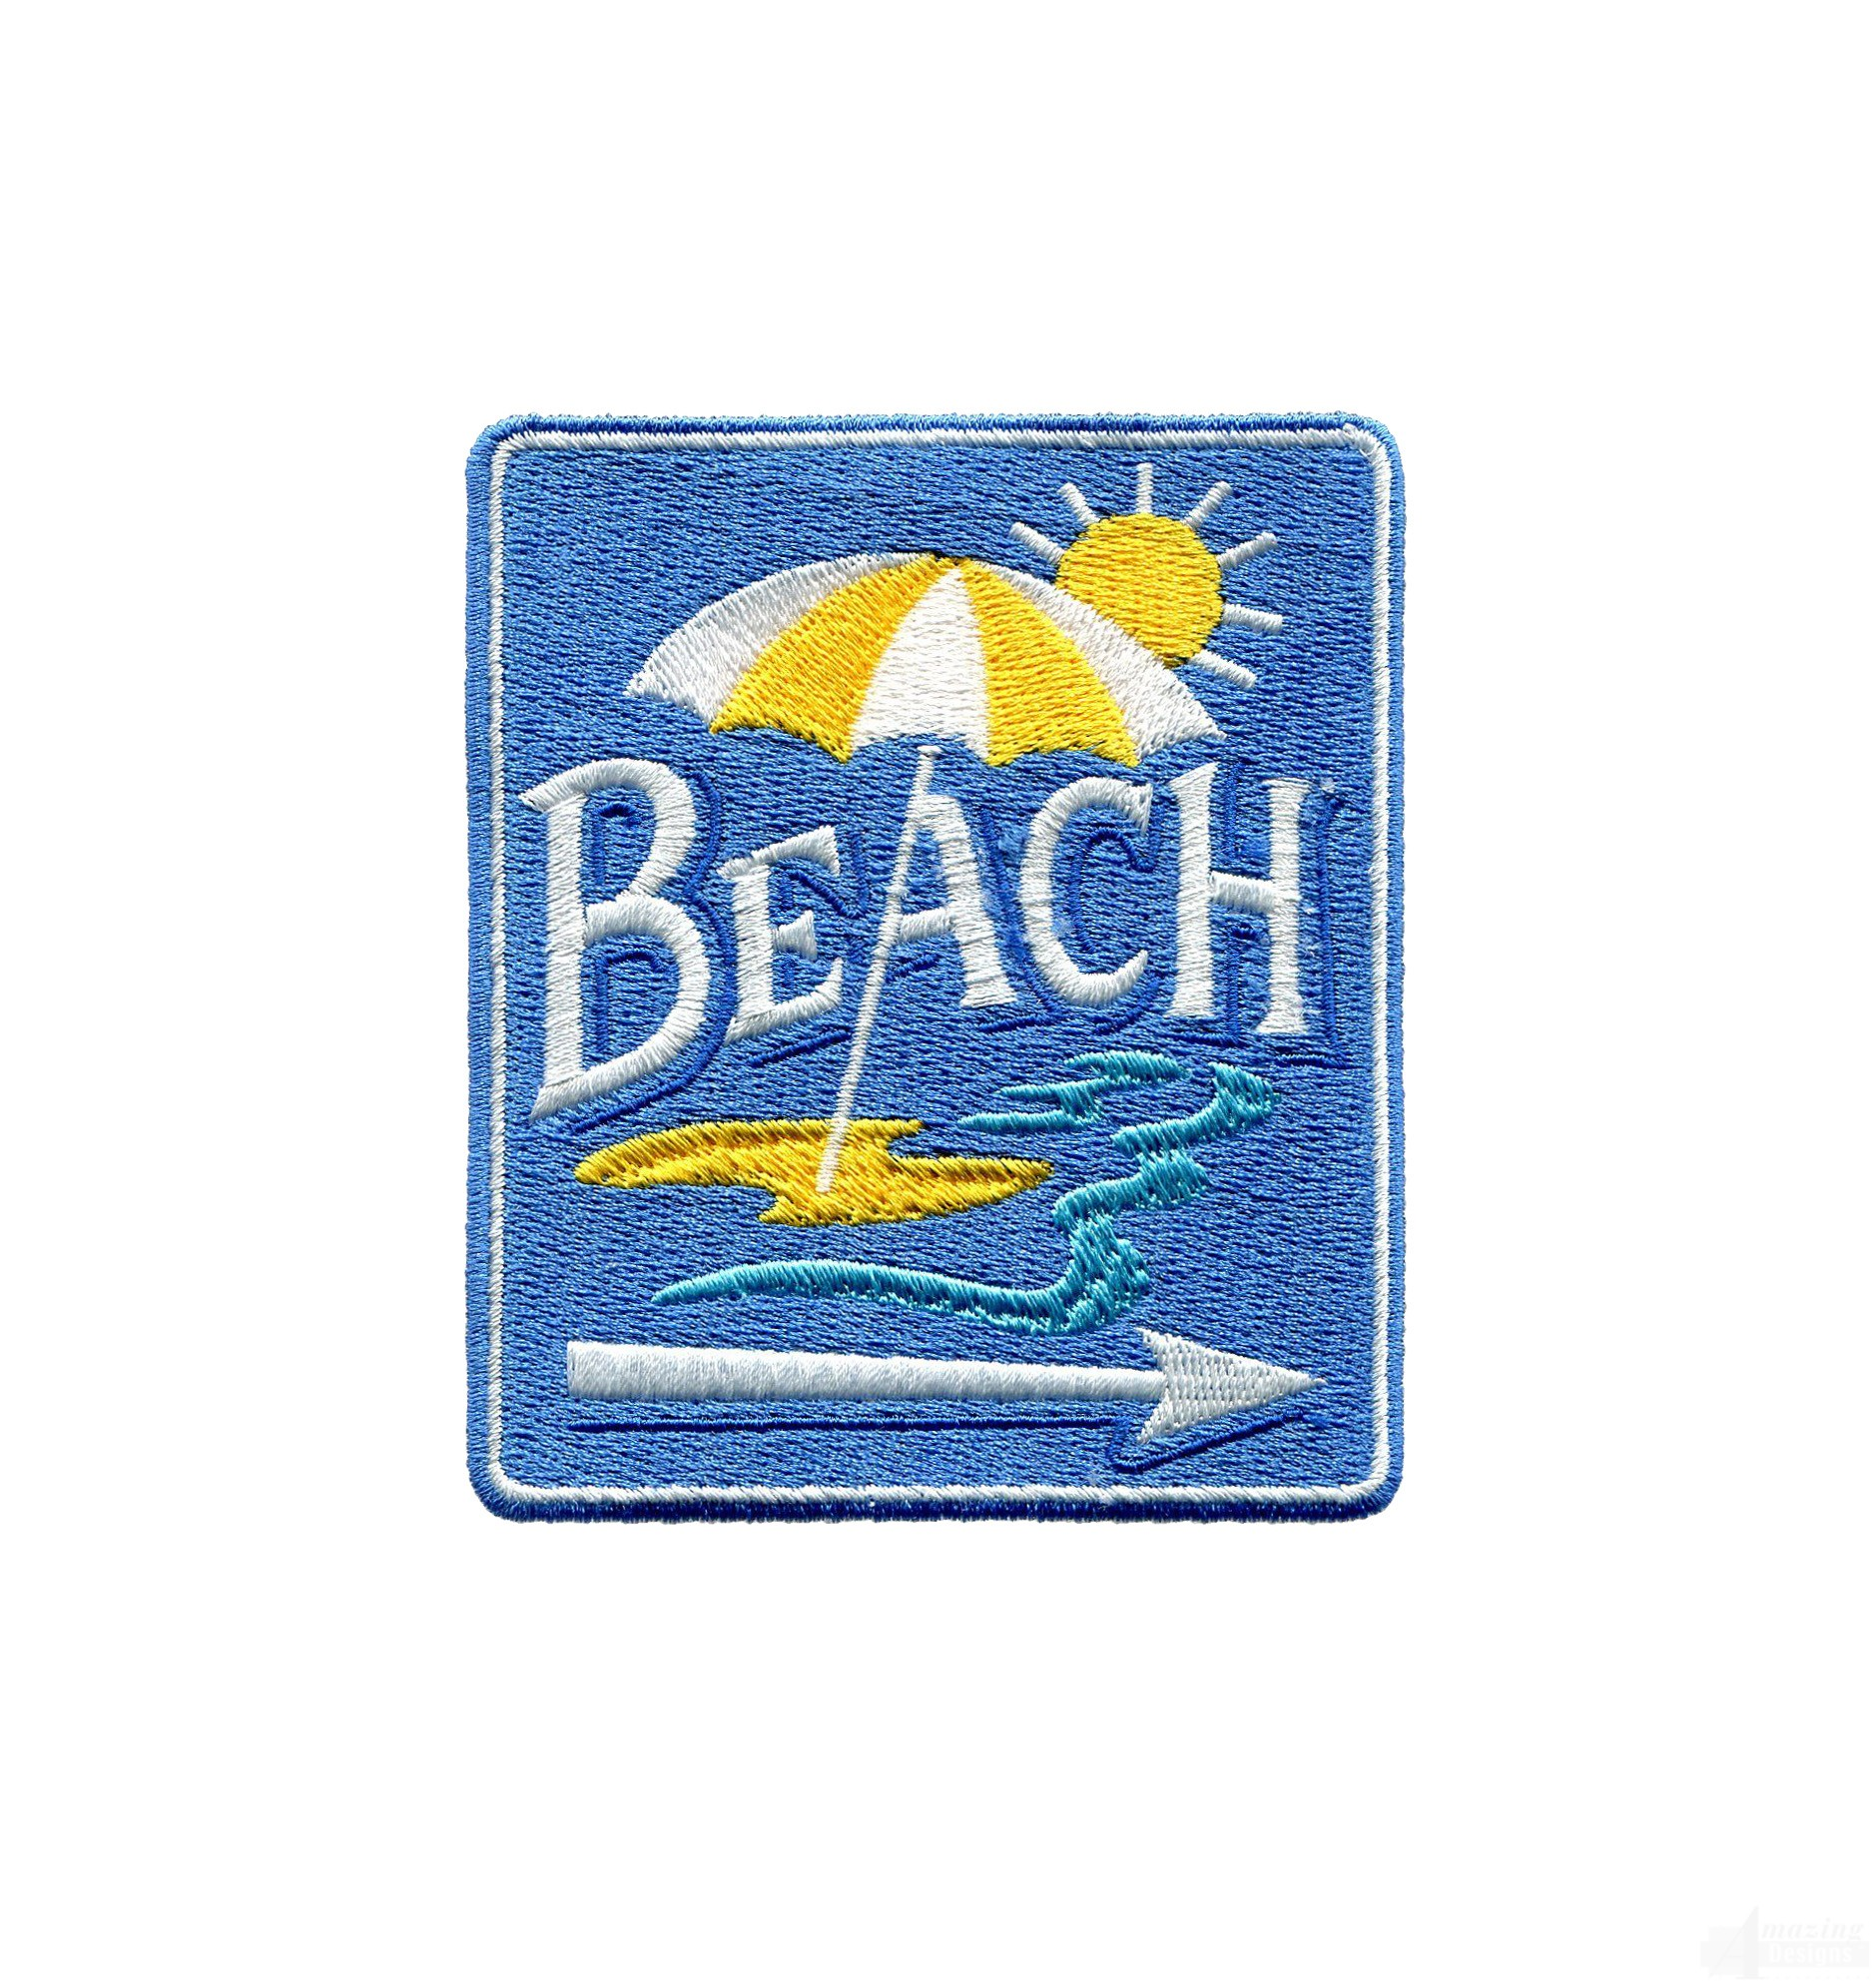 Swnse223 beach sign embroidery design for Beach house embroidery design